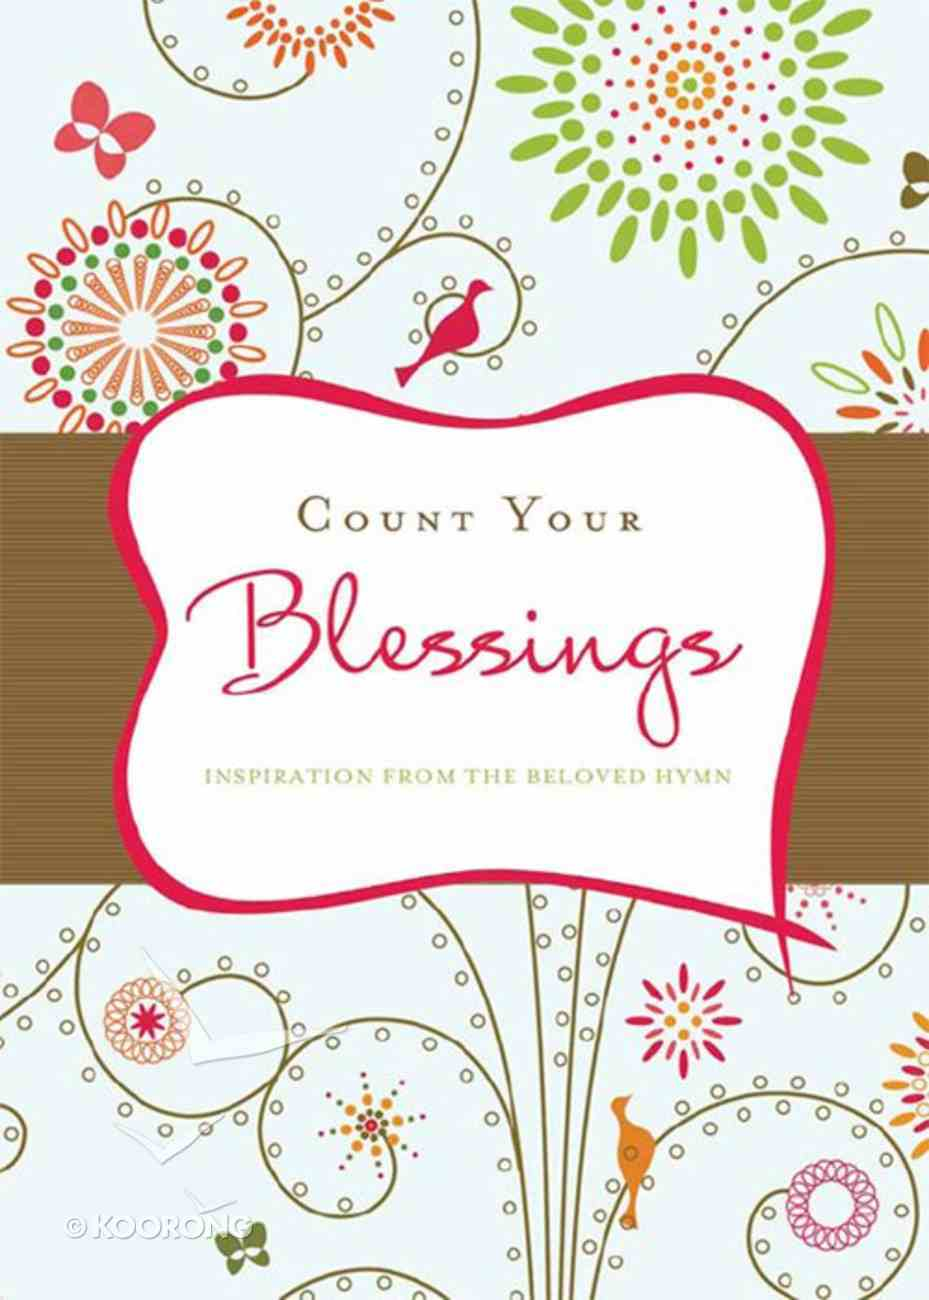 Count Your Blessings (Inspiration From The Beloved Hymn Series) eBook